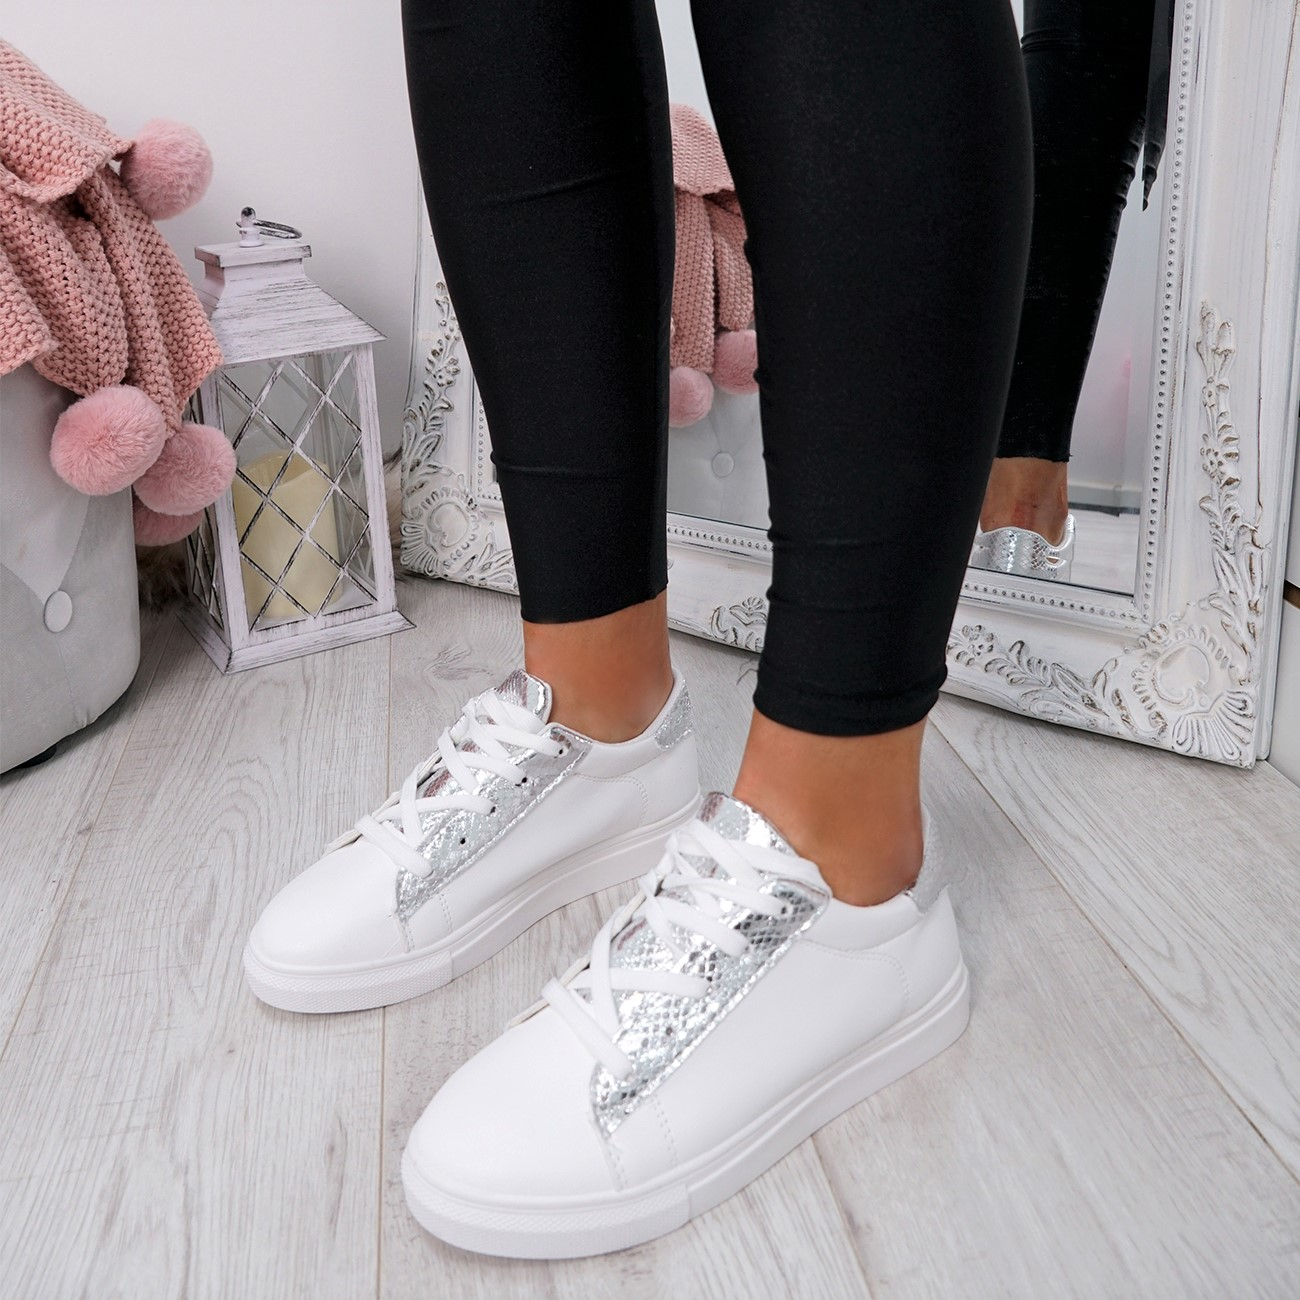 WOMENS-LADIES-SNAKE-SKIN-GLITTER-LACE-UP-TRAINERS-PLIMSOLLS-SNEAKERS-SHOES thumbnail 25